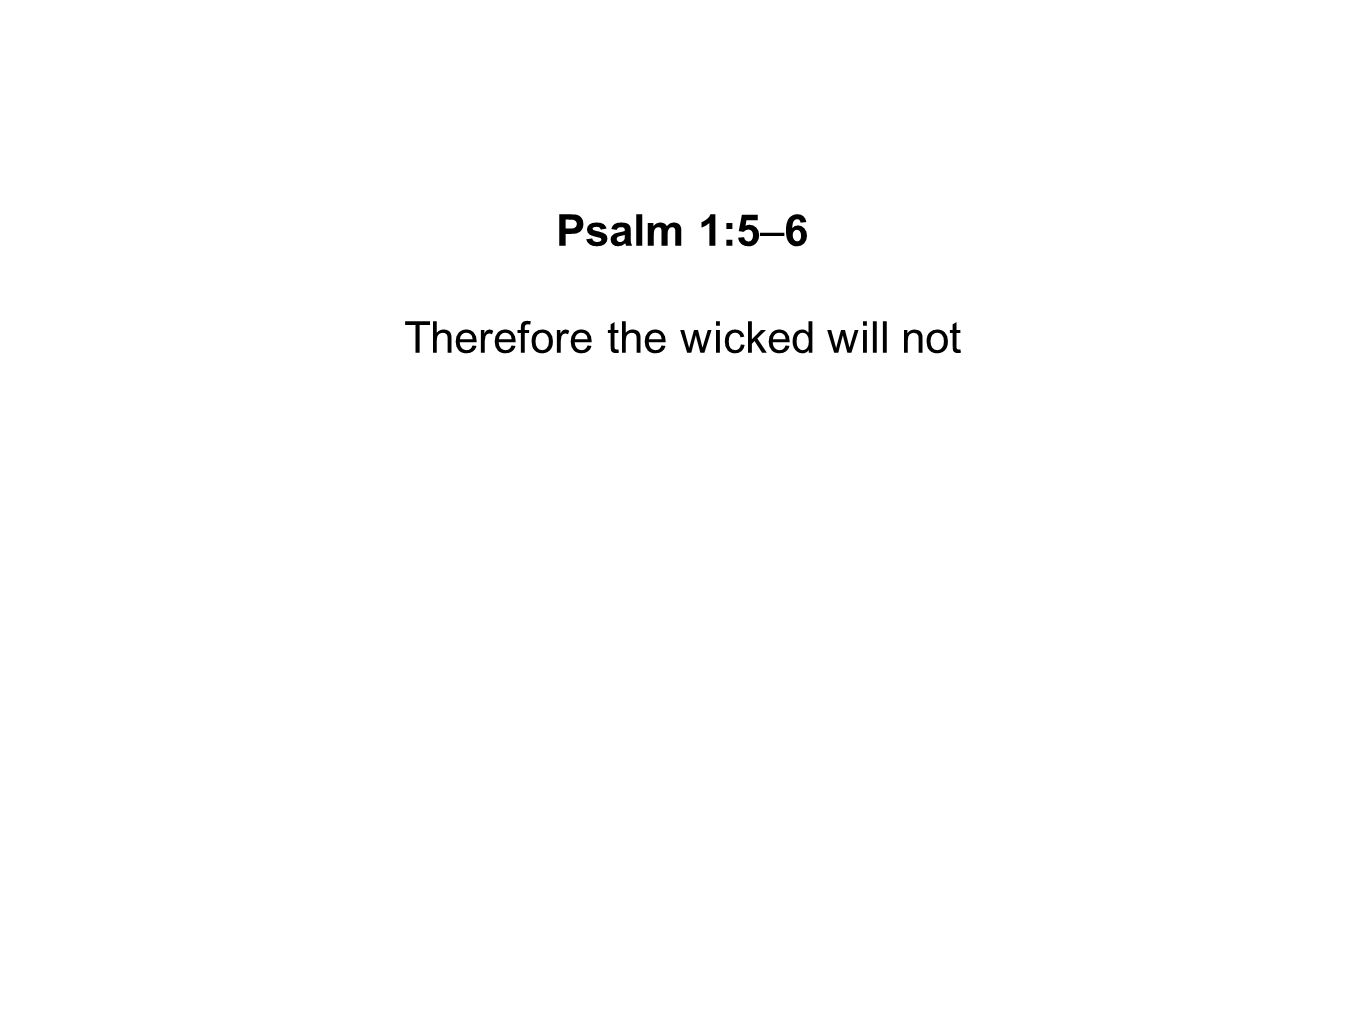 Therefore the wicked will not